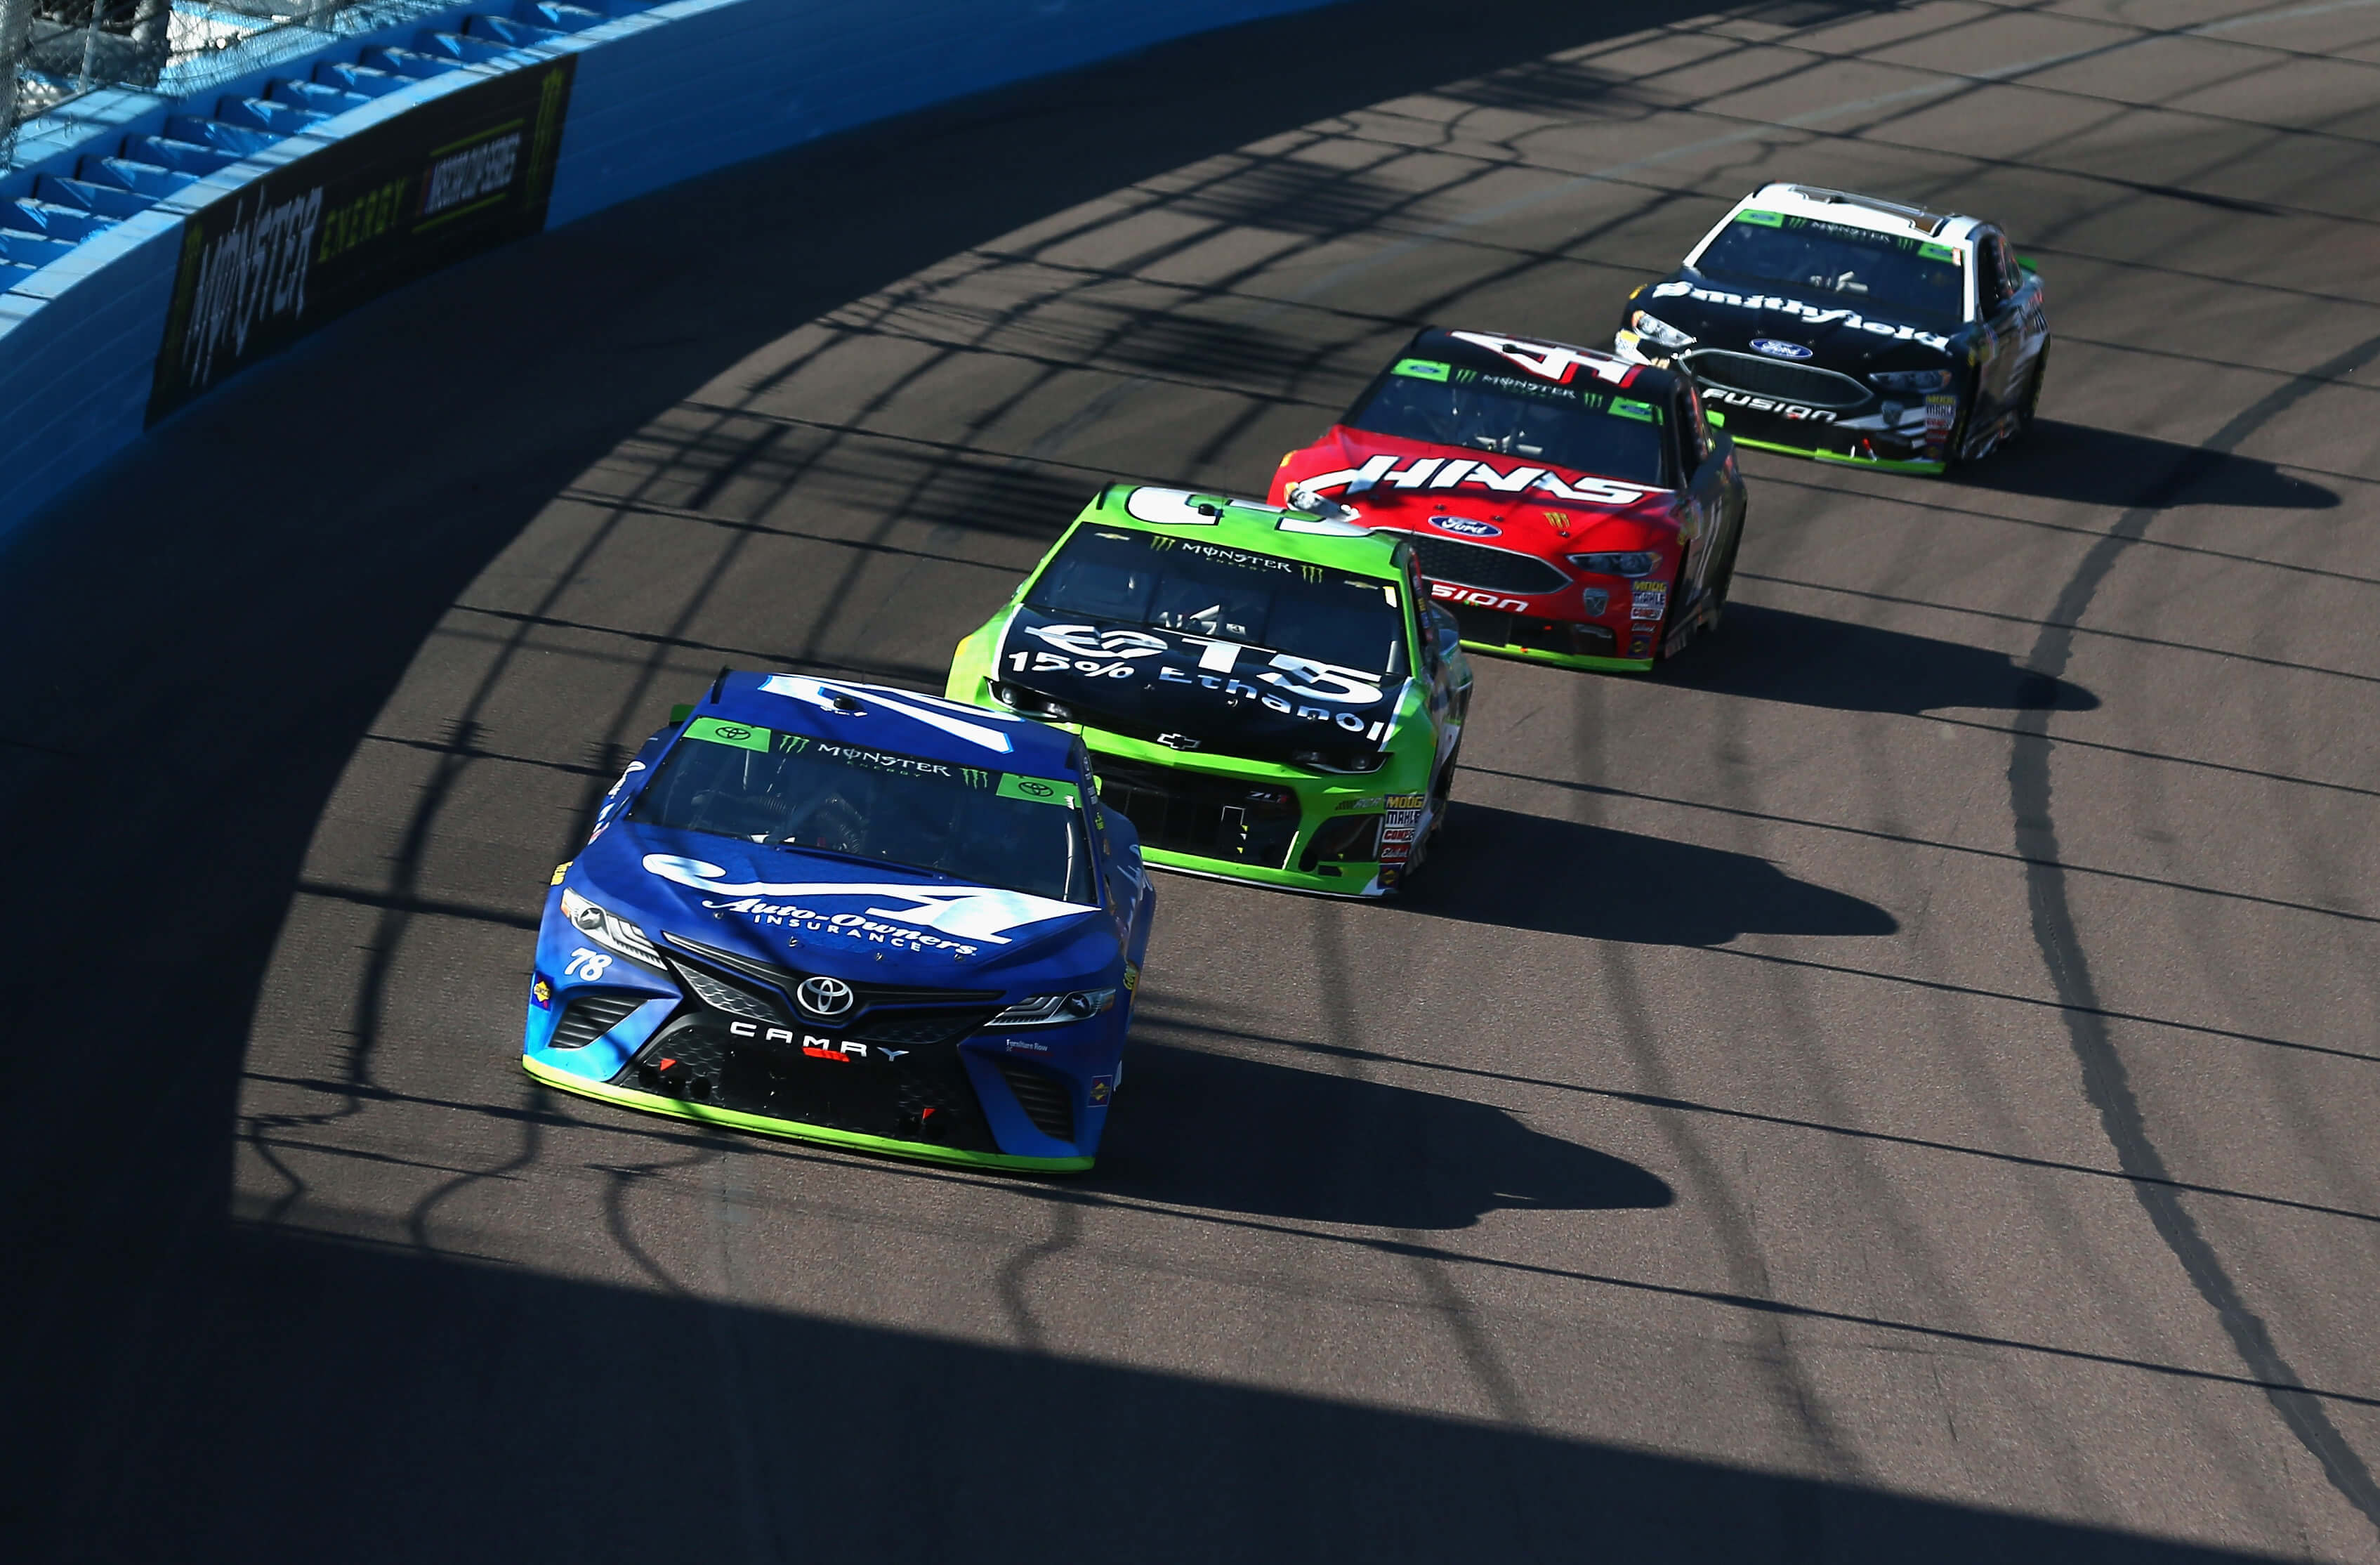 2019 NASCAR Drivers List: Team and crew chief pairings